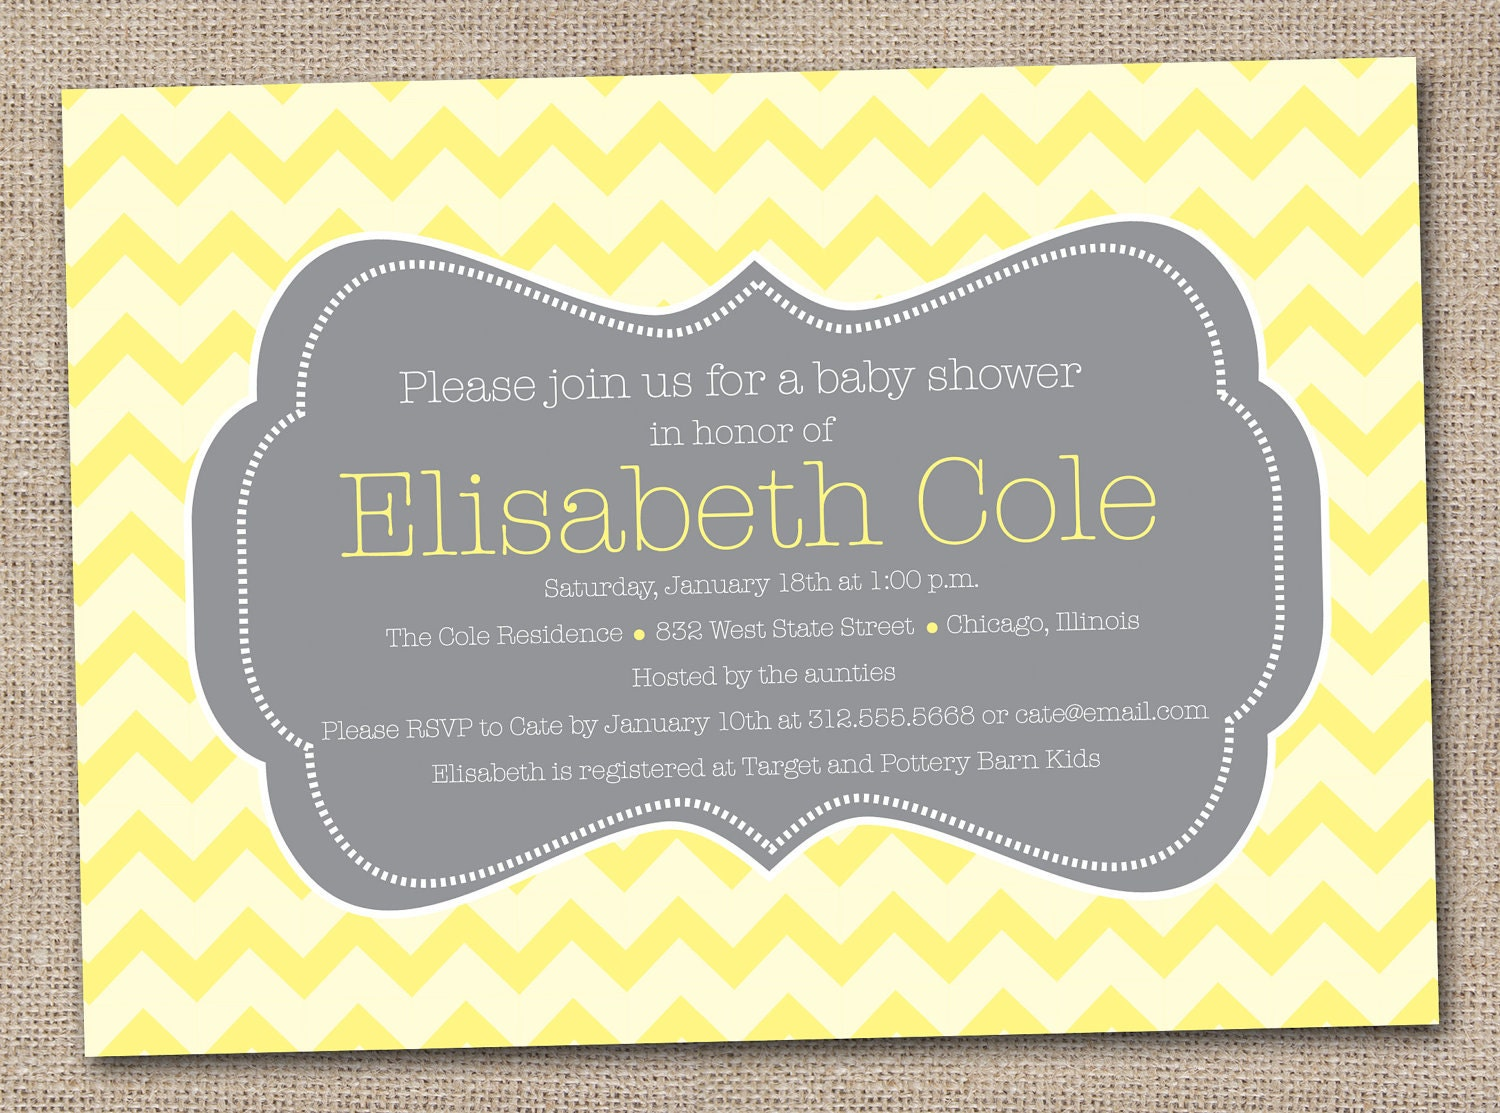 Printable baby shower invitations yellow by for Yellow bridal shower invitations